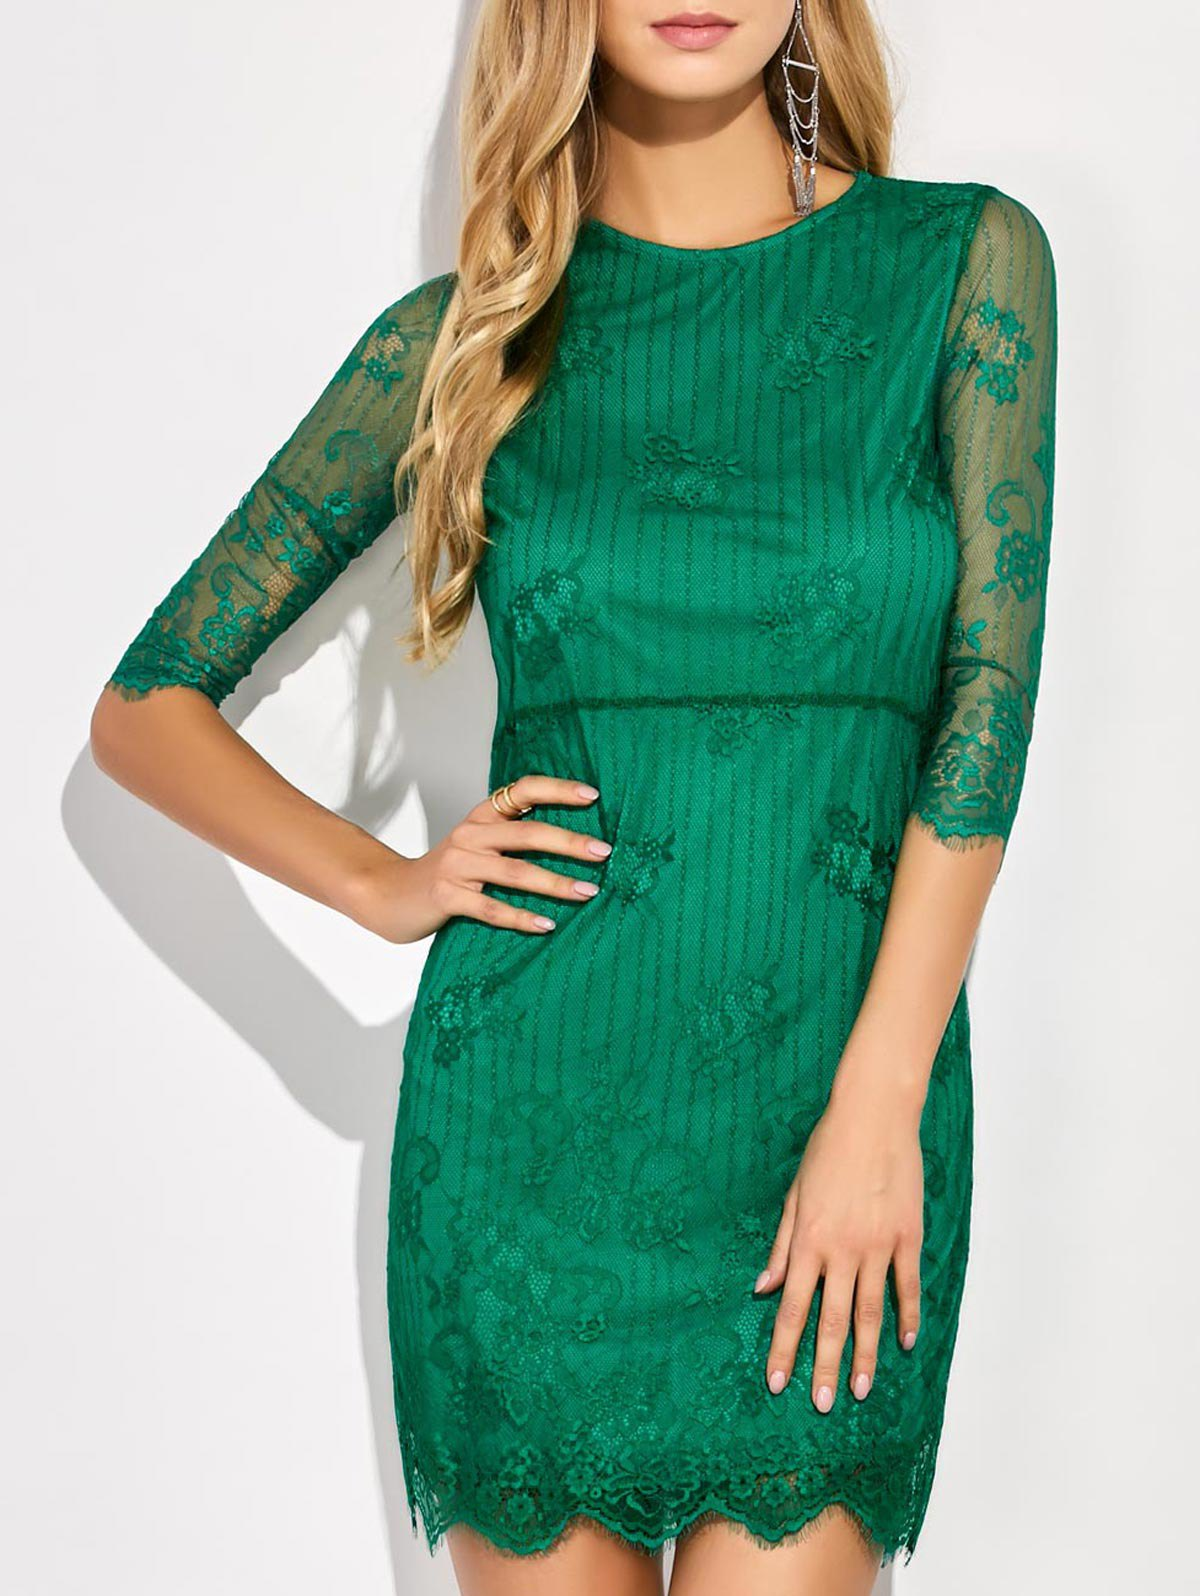 Scalloped Mini Floral Lace DressClothes<br><br><br>Size: L<br>Color: GREEN